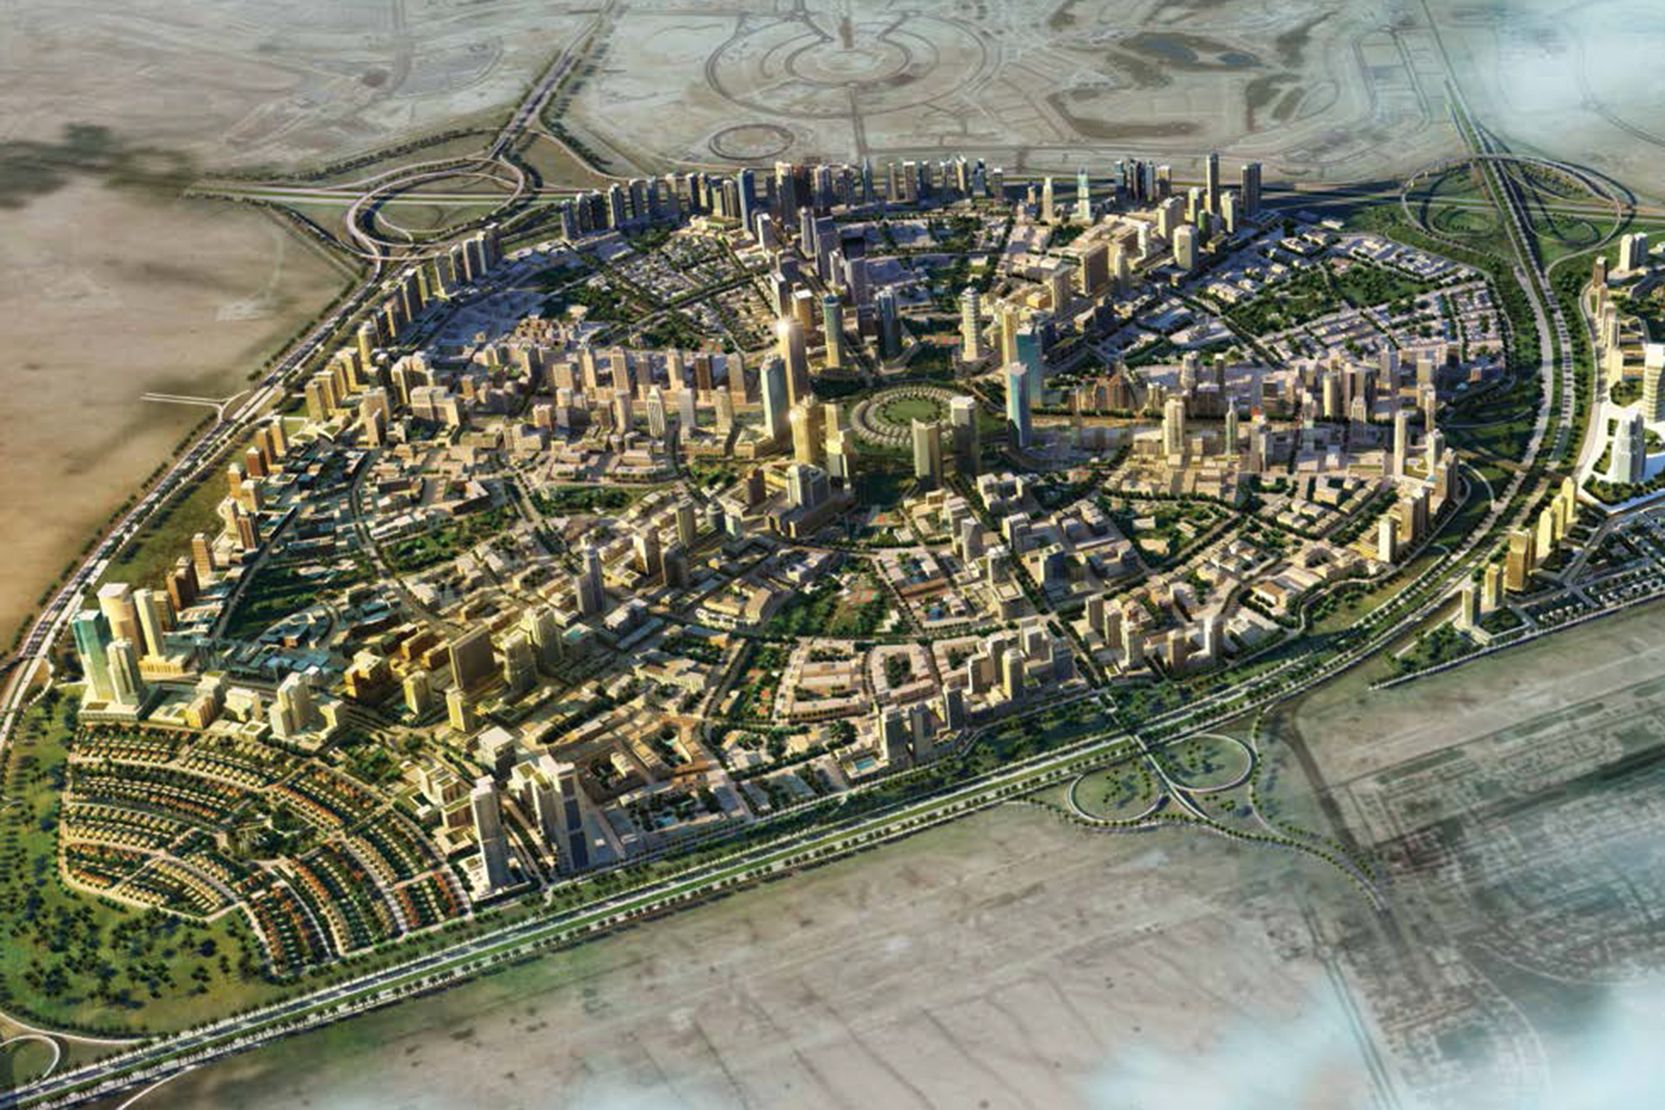 Jumeirah Village Circle, Dubai, developer's masterplan